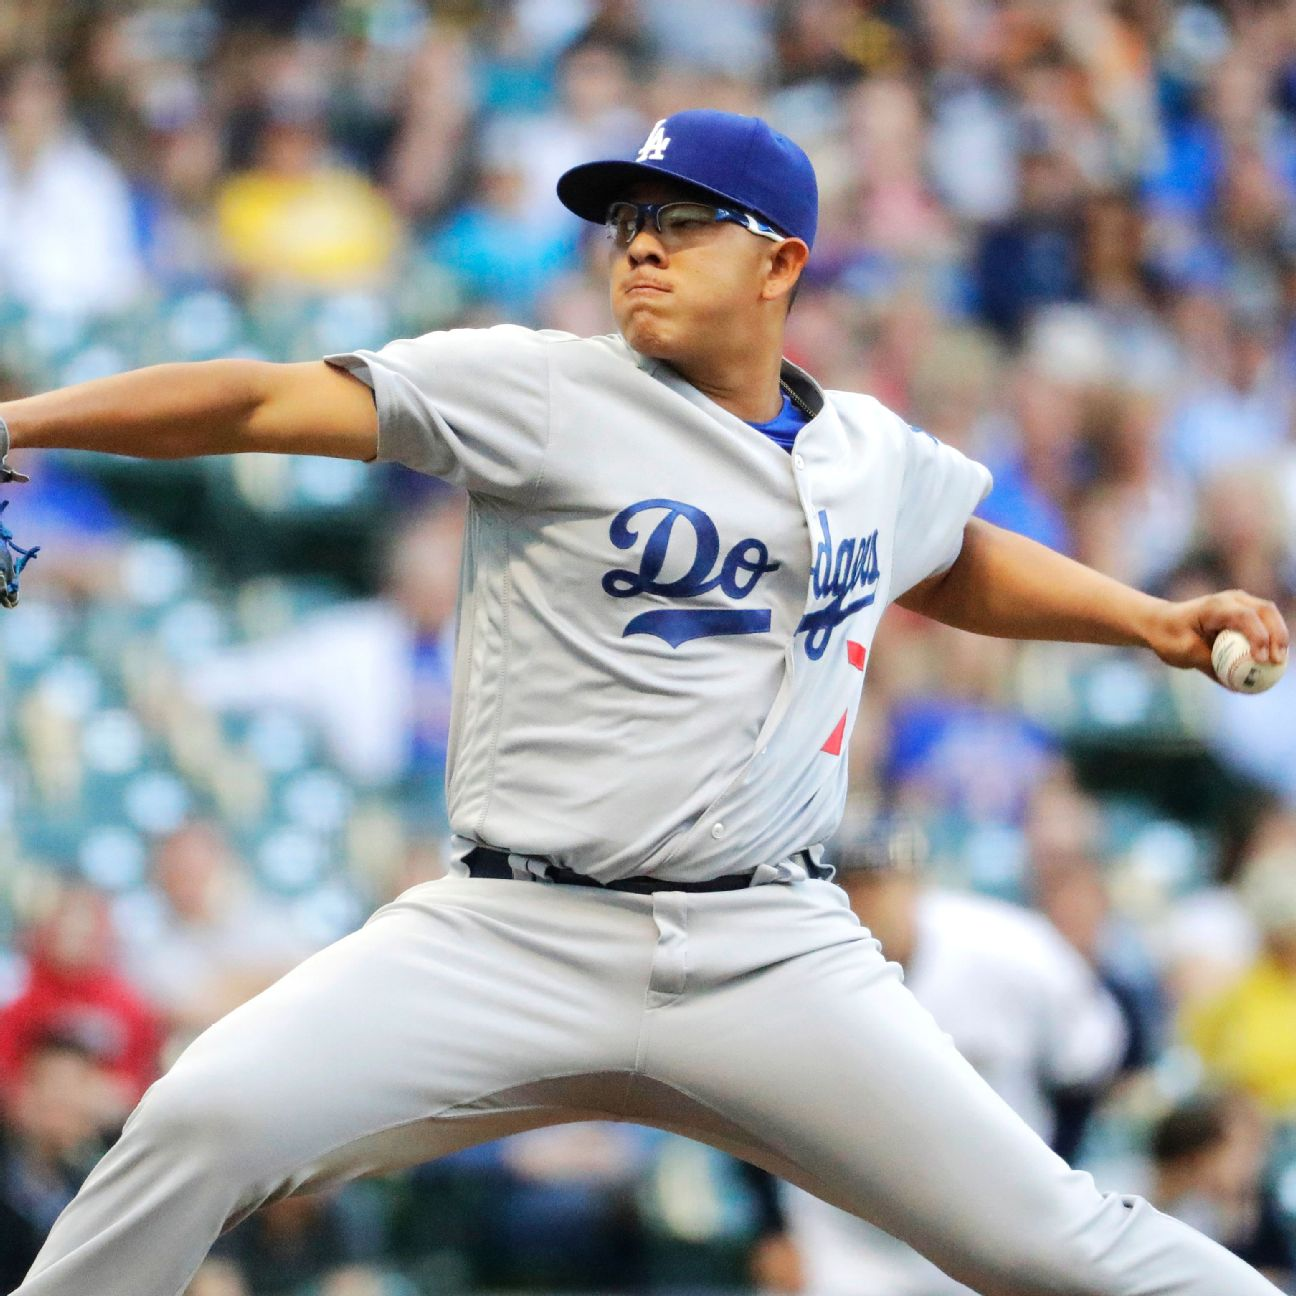 Dodgers' Julio Urias gets first win, waits for word on one ...